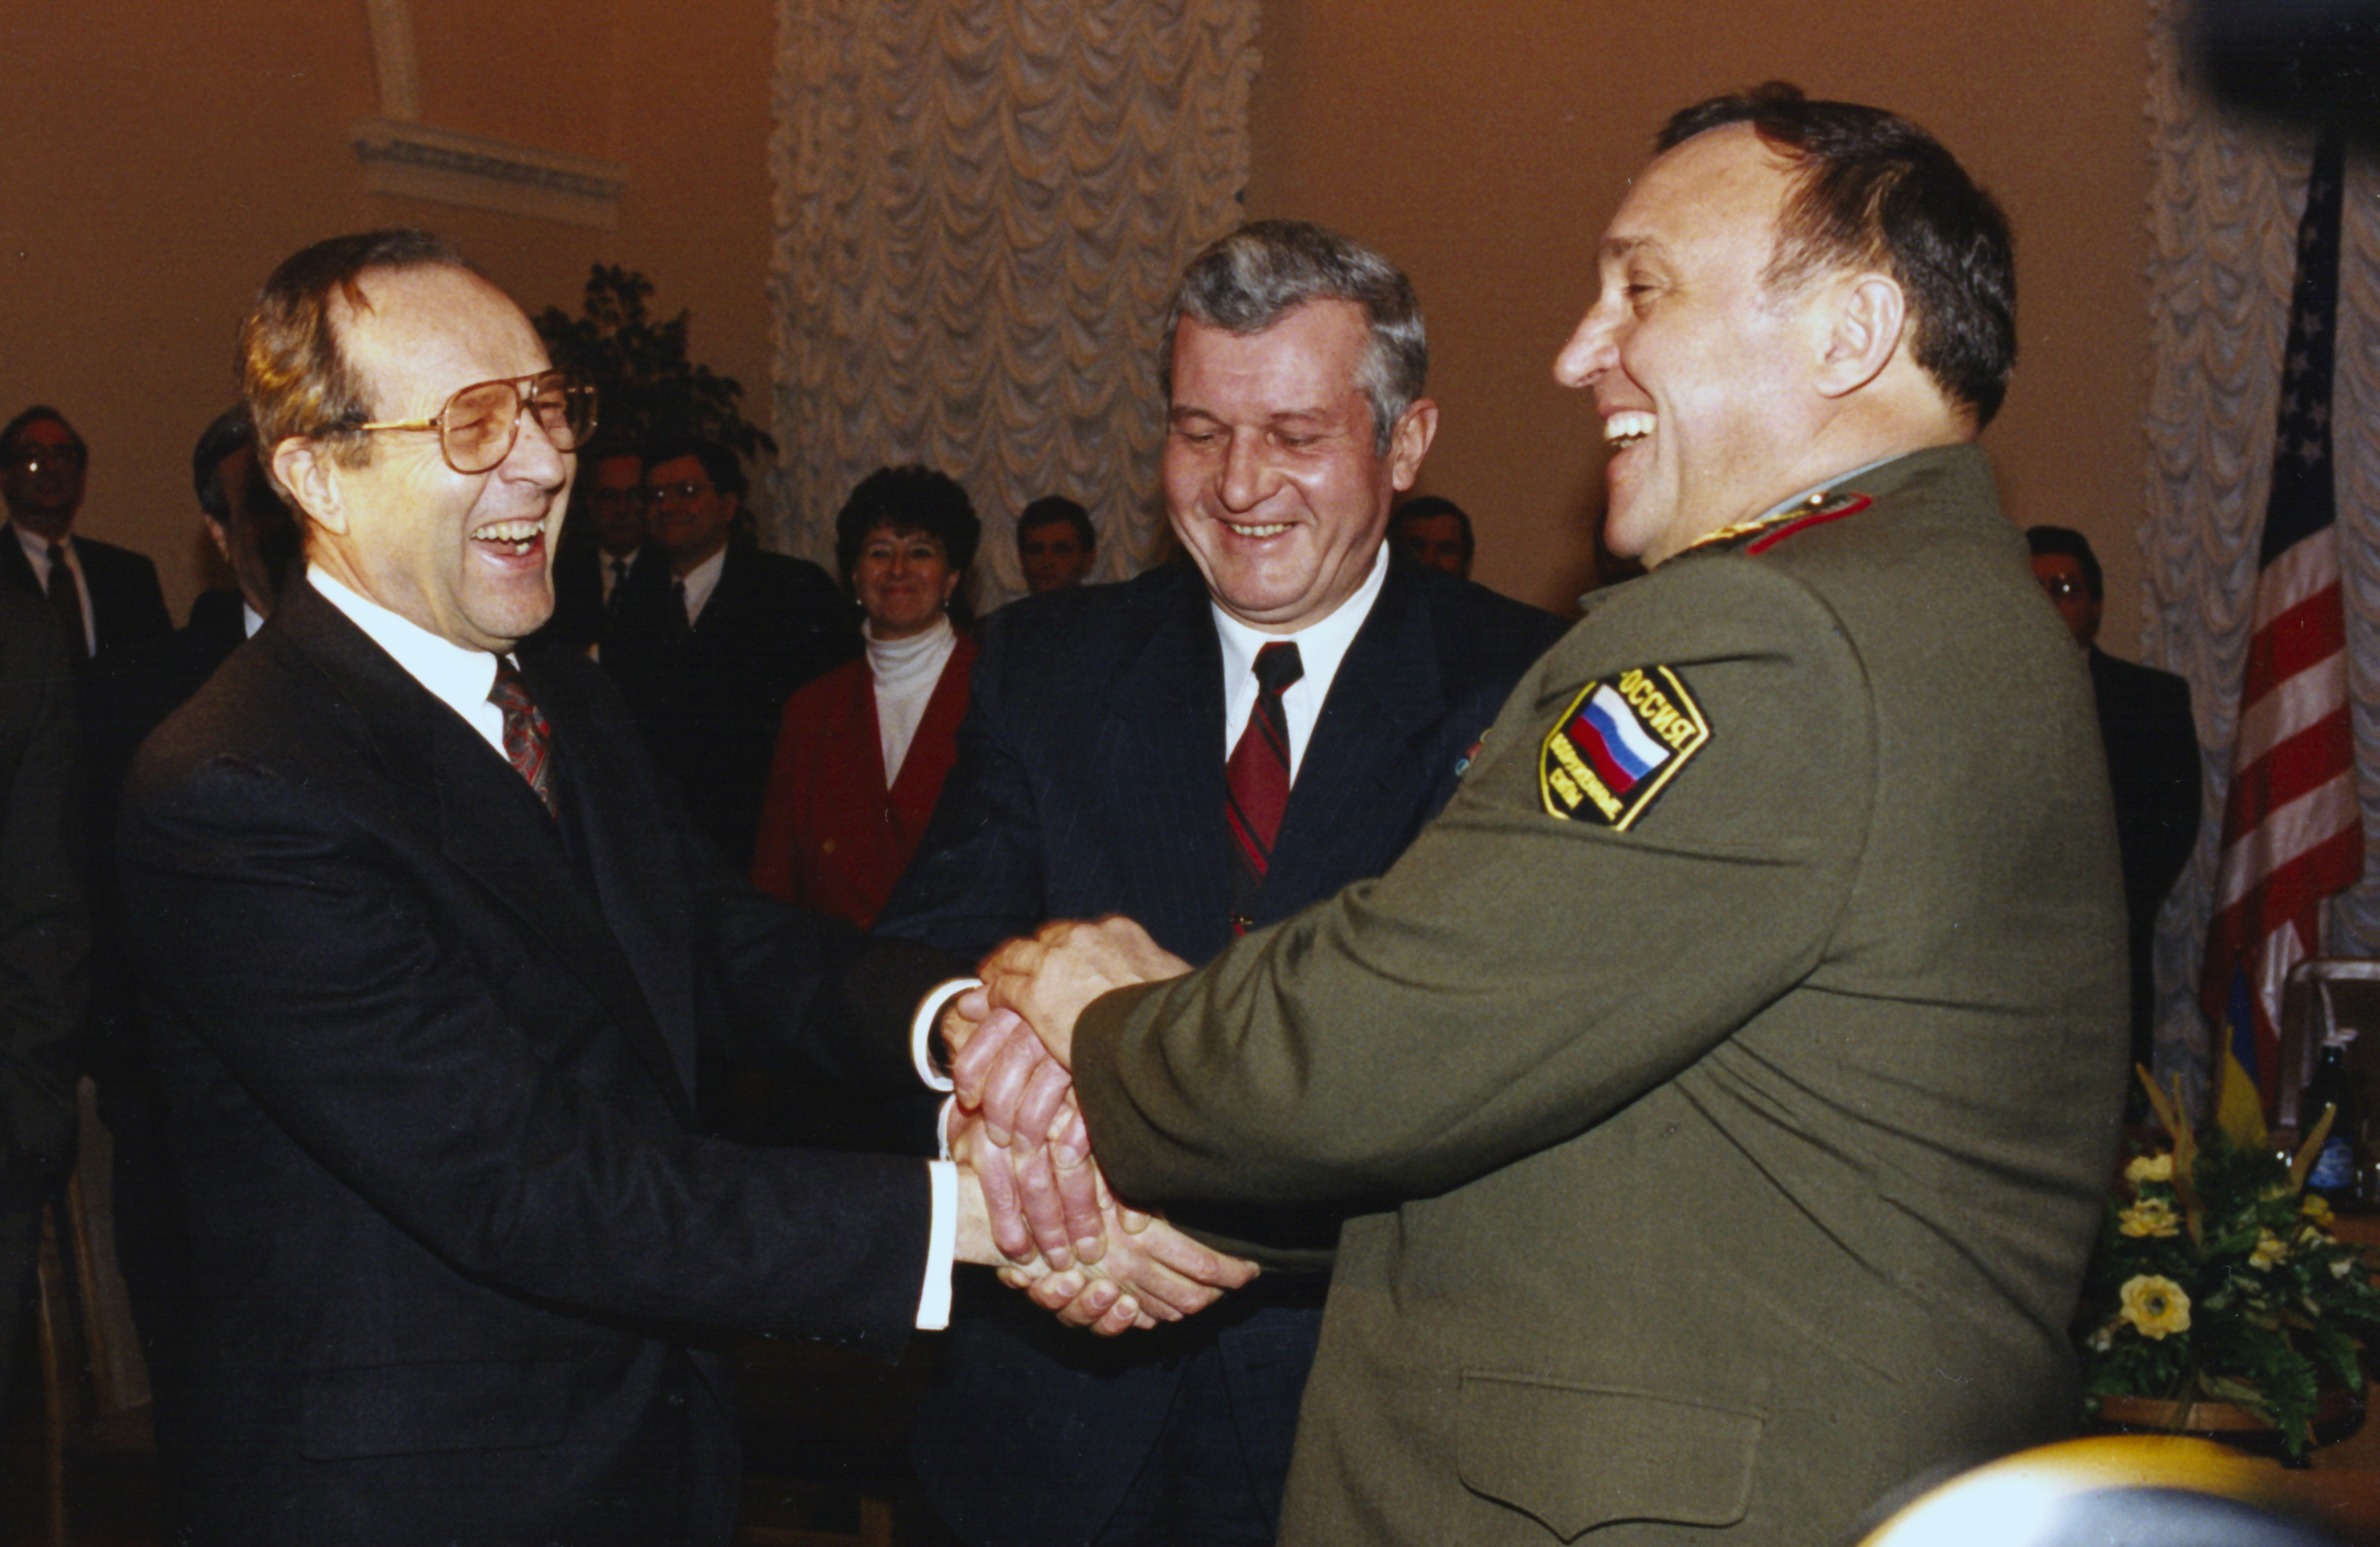 An historic meeting in Kiev, Ukraine: the defense ministers from the United States, Russia, and Ukraine all join hands before discussion, 4 January 1996.